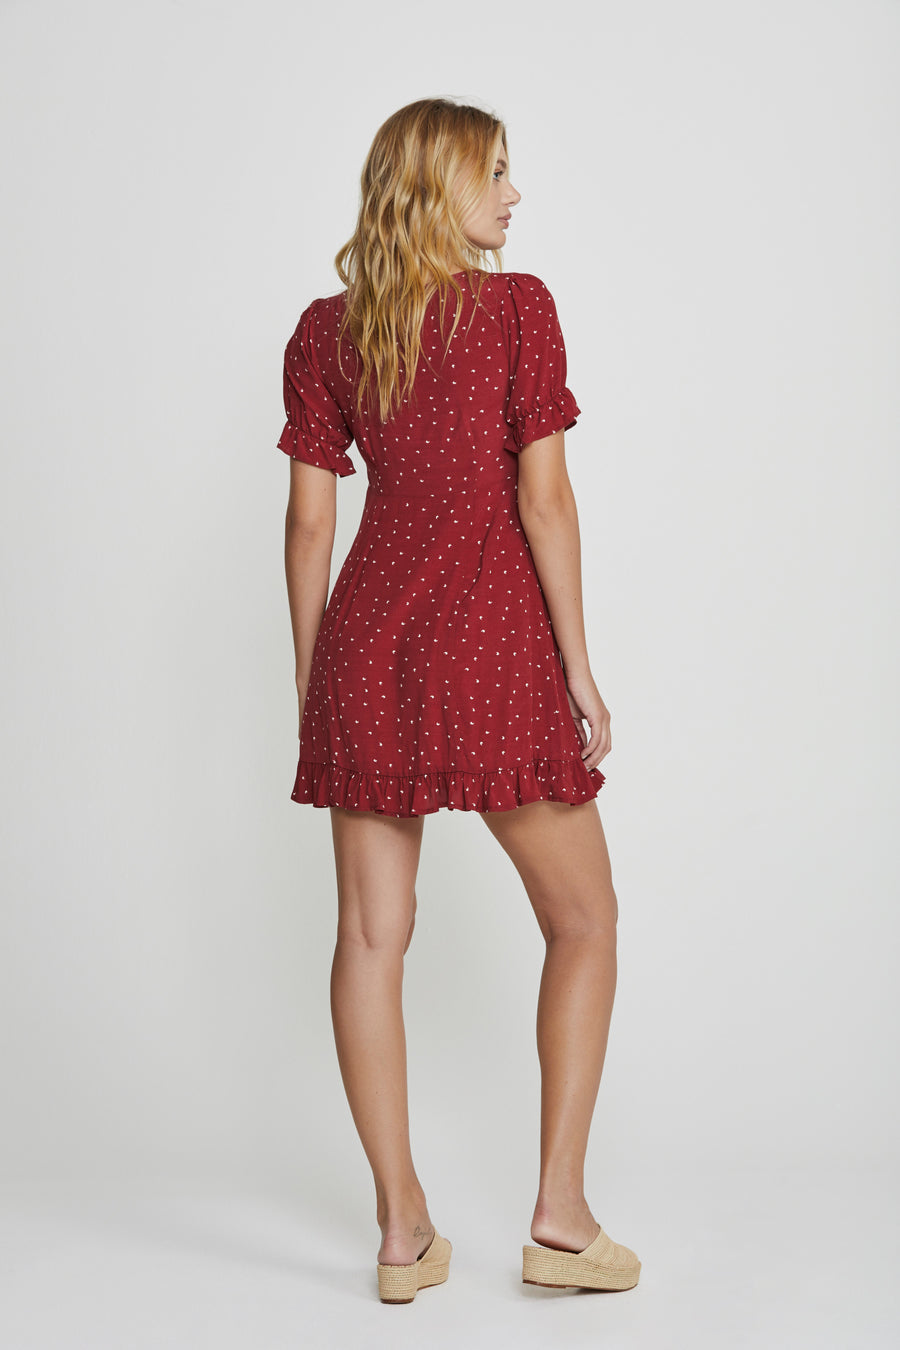 Luna Dusk Mini Dress Wine